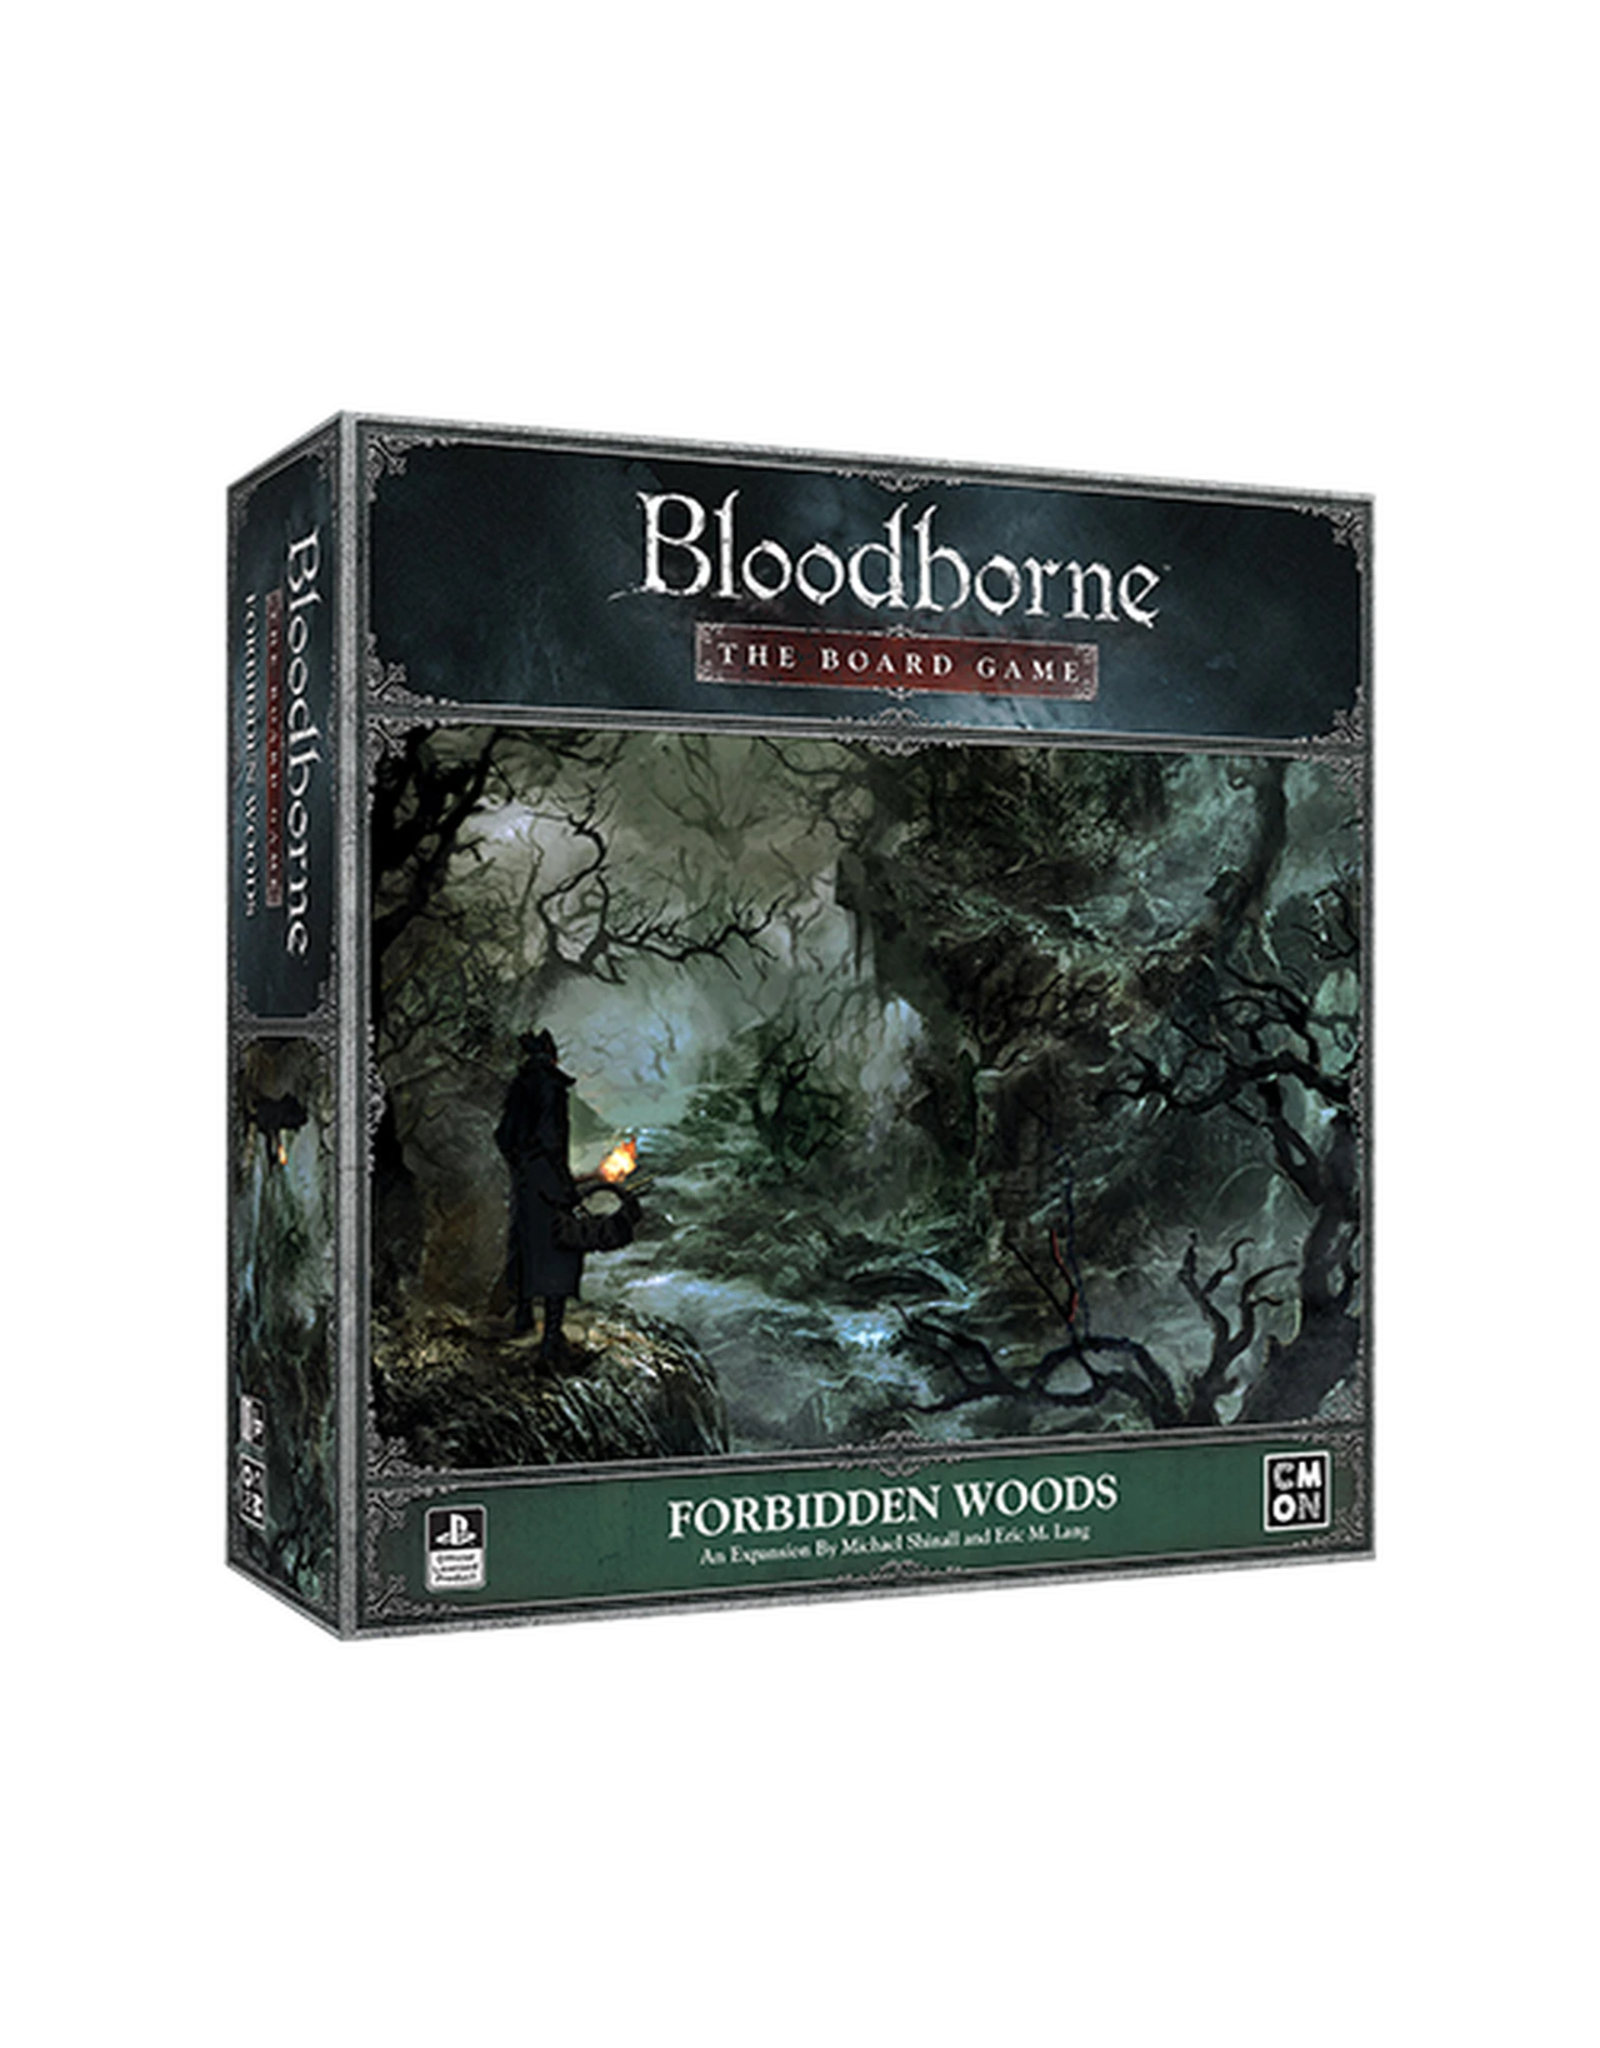 CMON PRODUCTIONS BLOODBORNE THE BOARD GAME THE FORBIDDEN WOODS EXPANSION